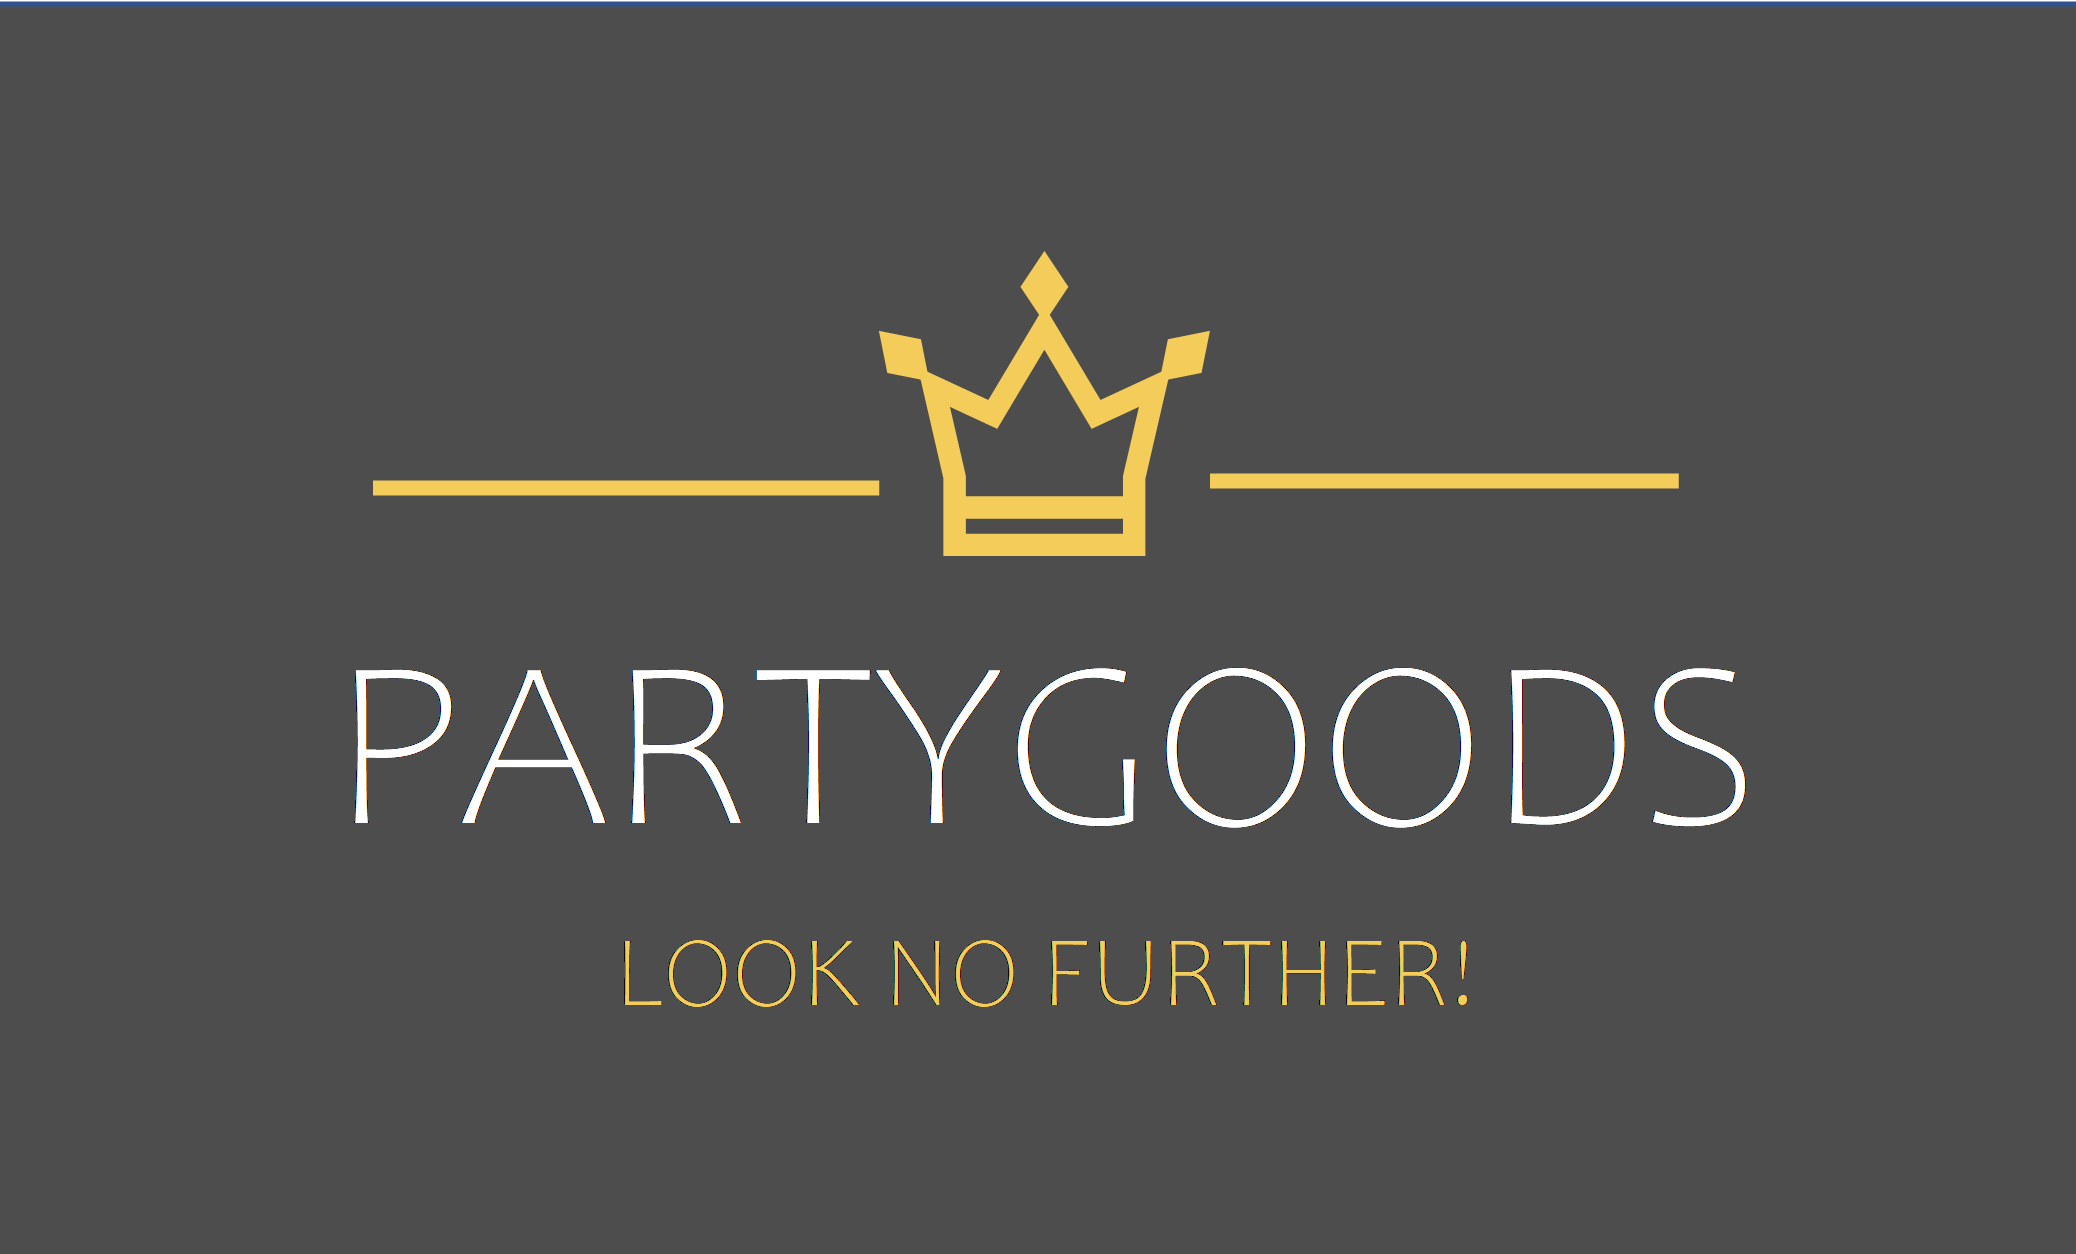 Partygoods